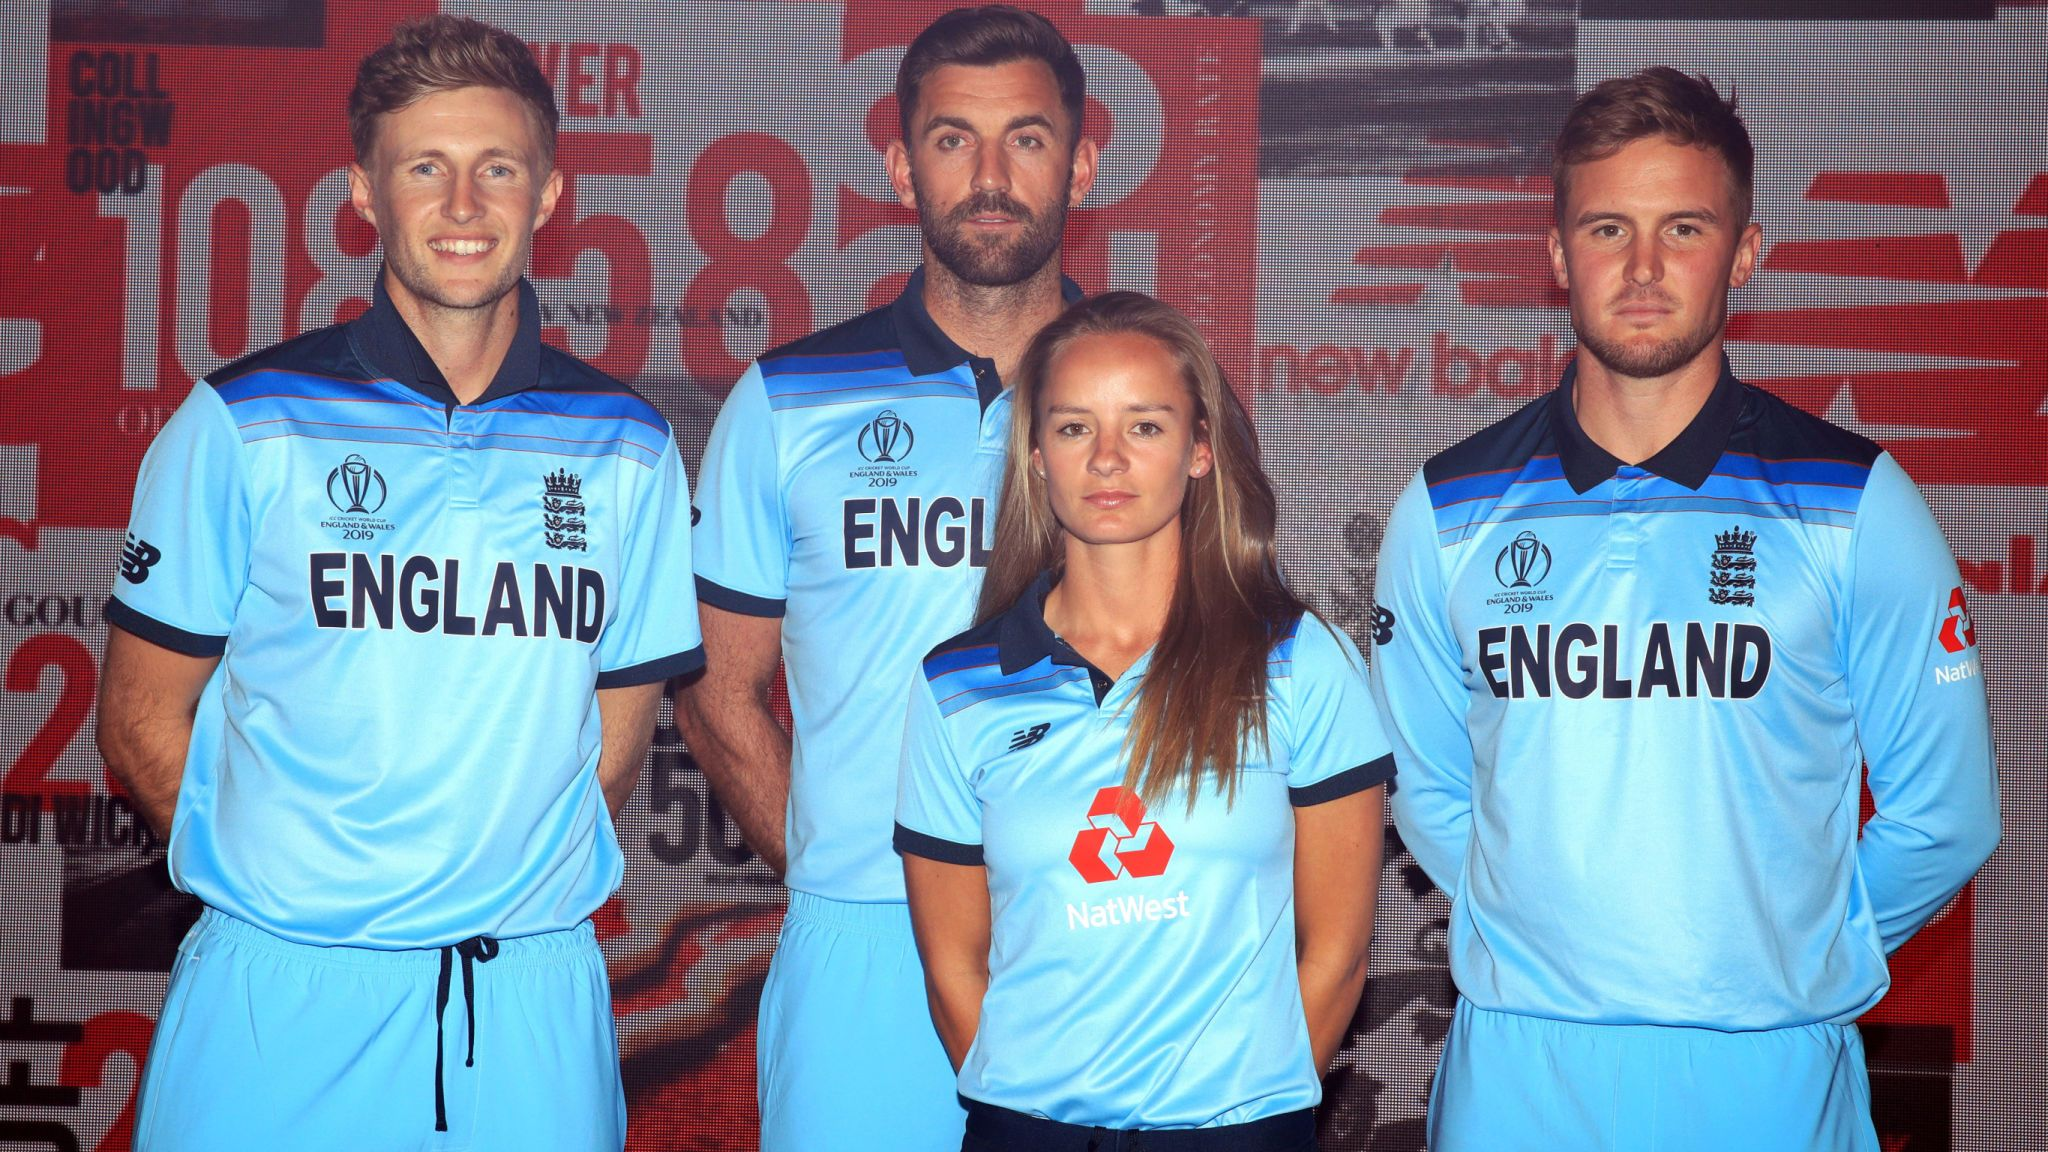 England Cricket Team Jersey